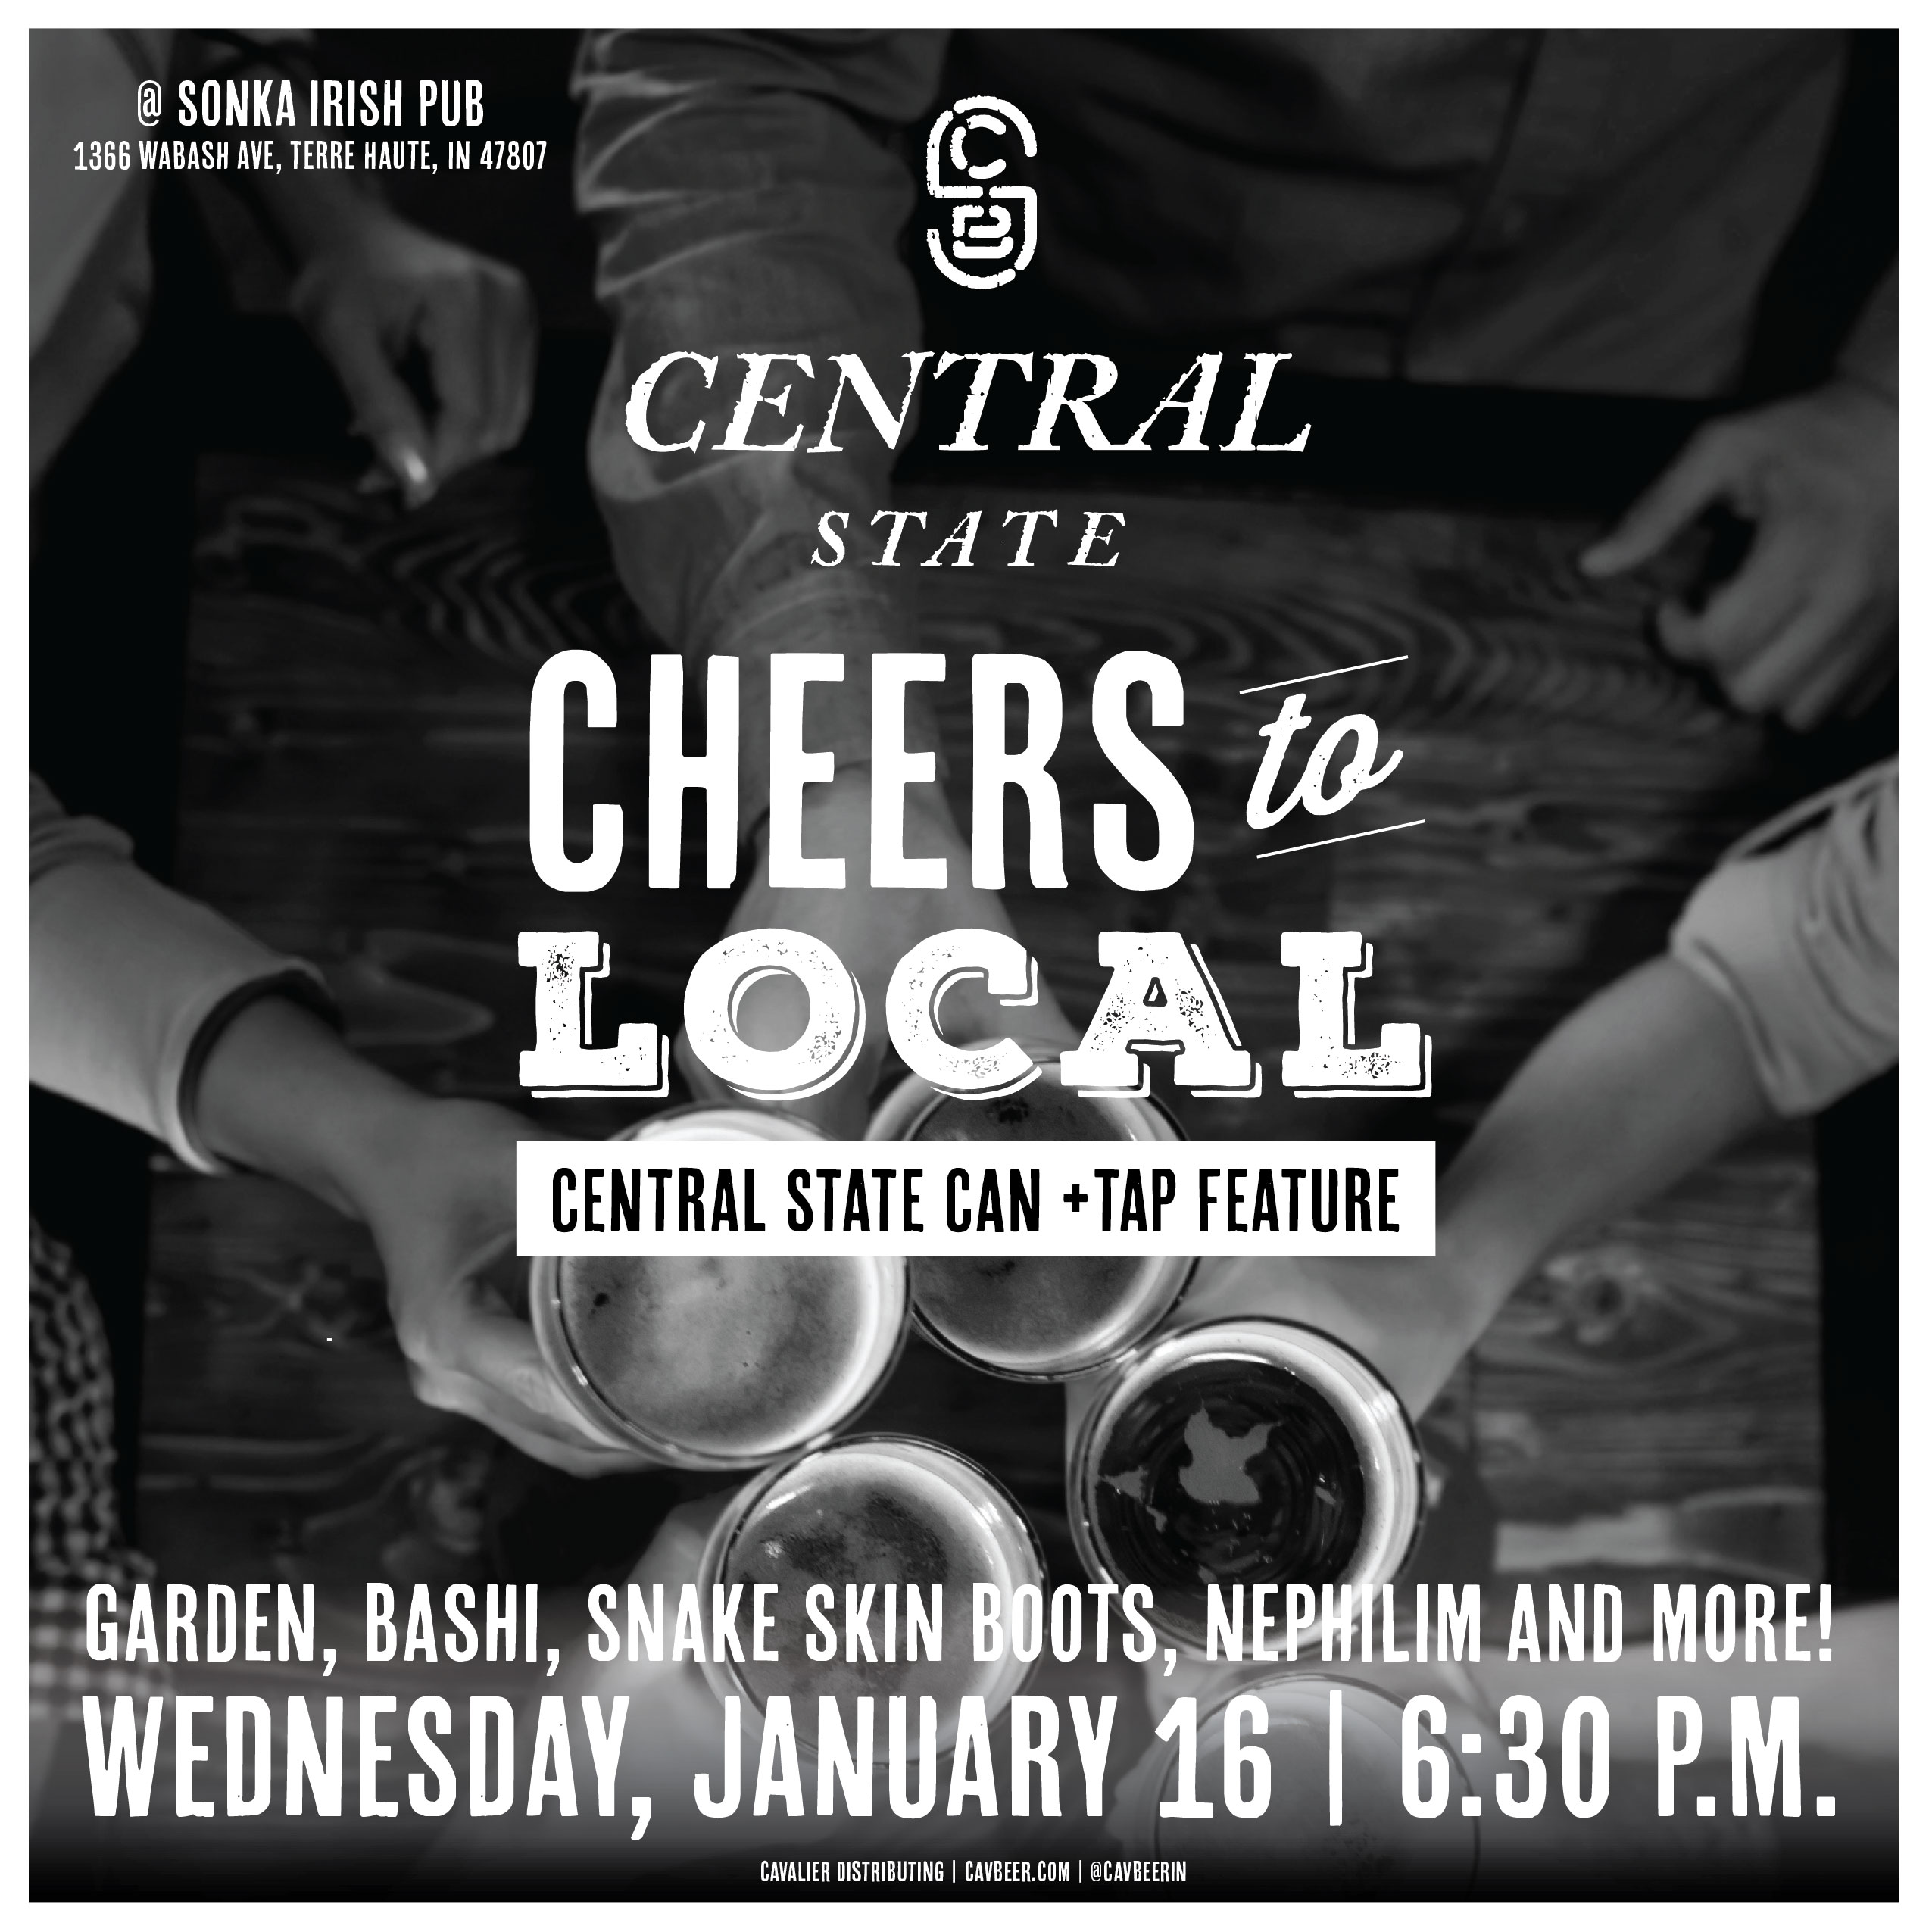 Central State Can & Tap Feature @ Sonka Irish Pub